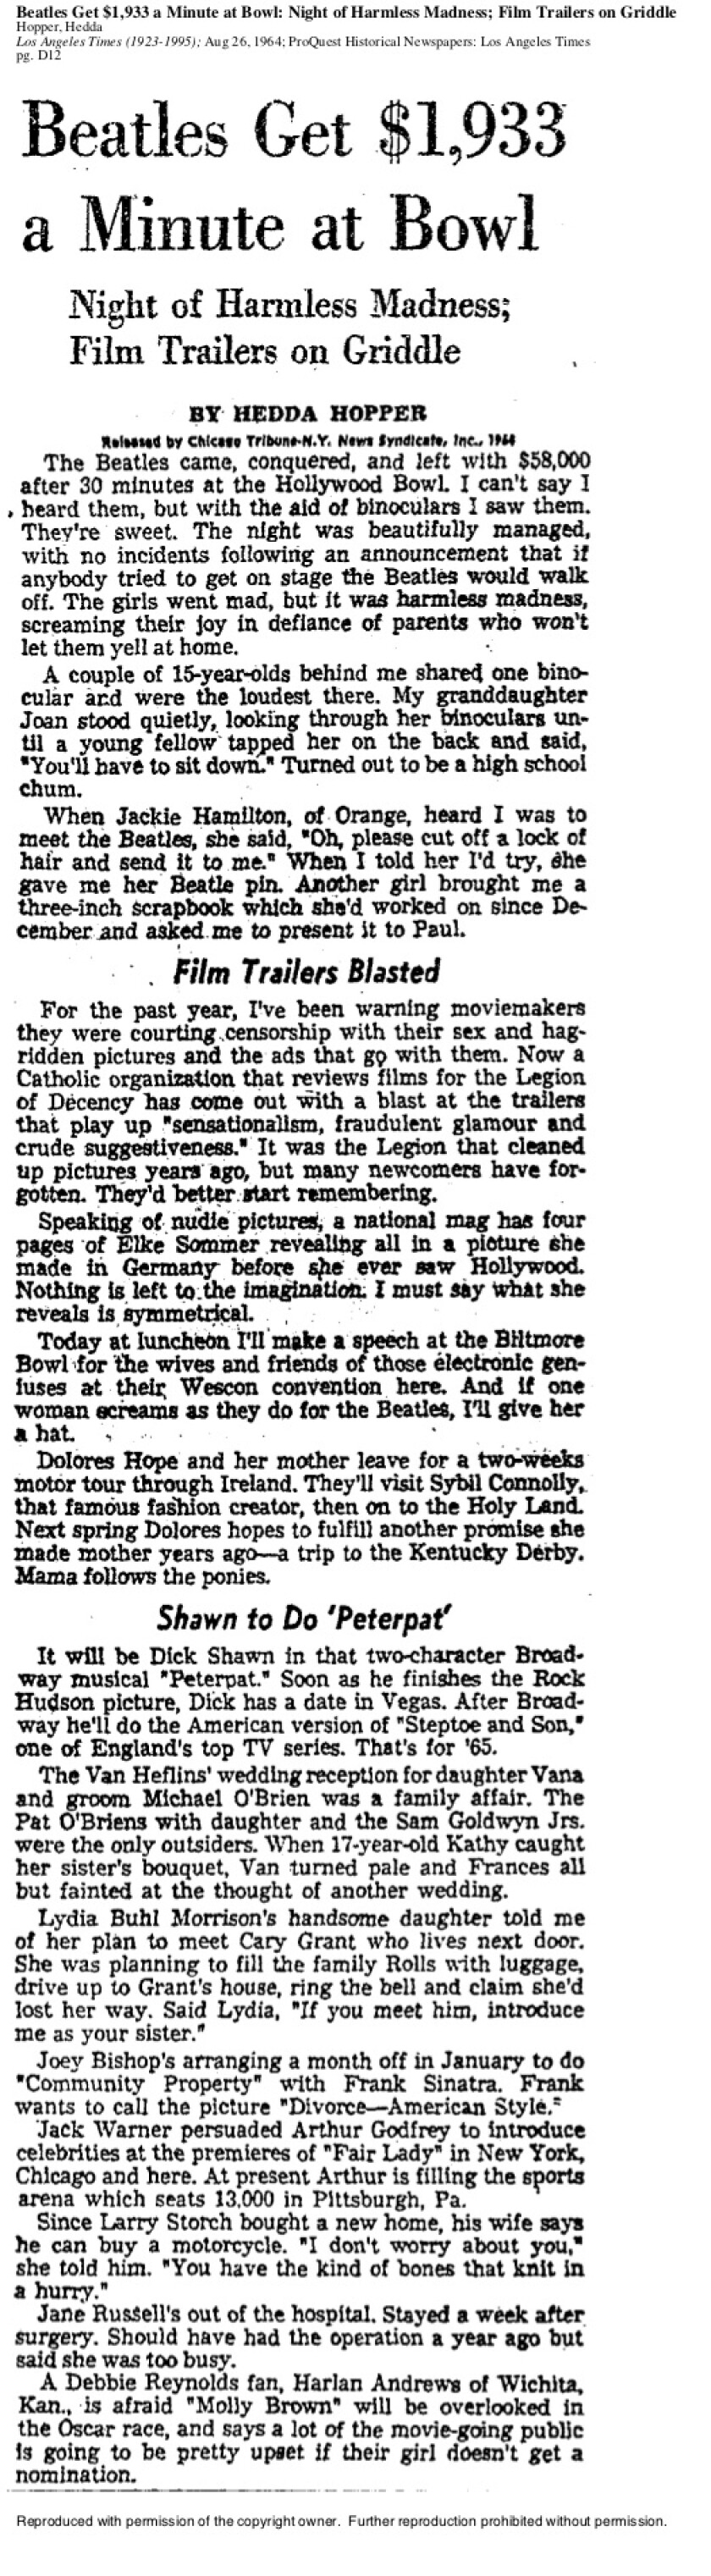 August 26, 1964: Times' gossip columnist Hedda Hopper wrote a tongue-in-cheek column about the Beatles' appearance at the Hollywood Bowl that summer.